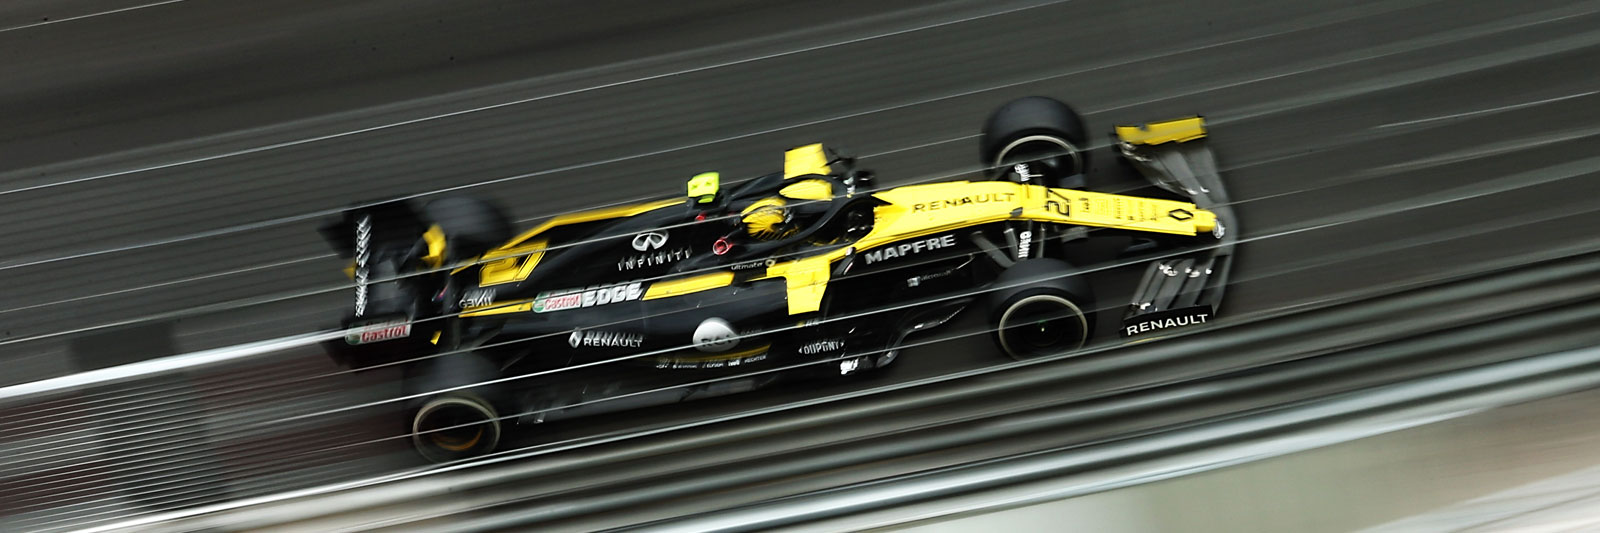 Renault F1 Team suite Tickets from Grand Prix Tours